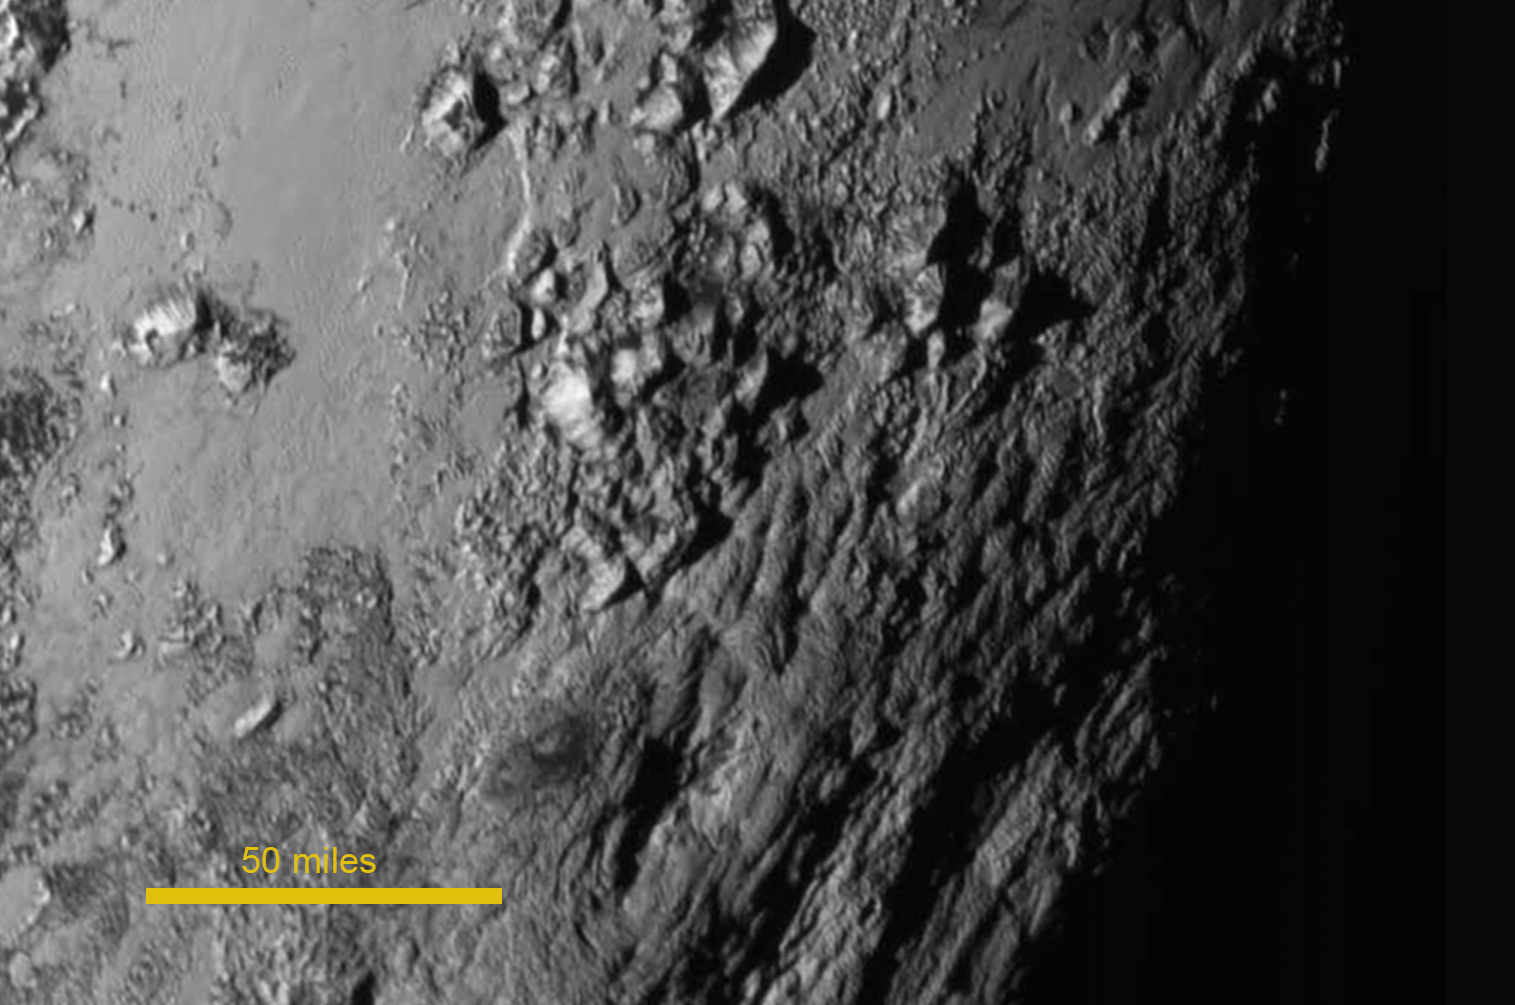 nh-pluto-surface-scale.jpg